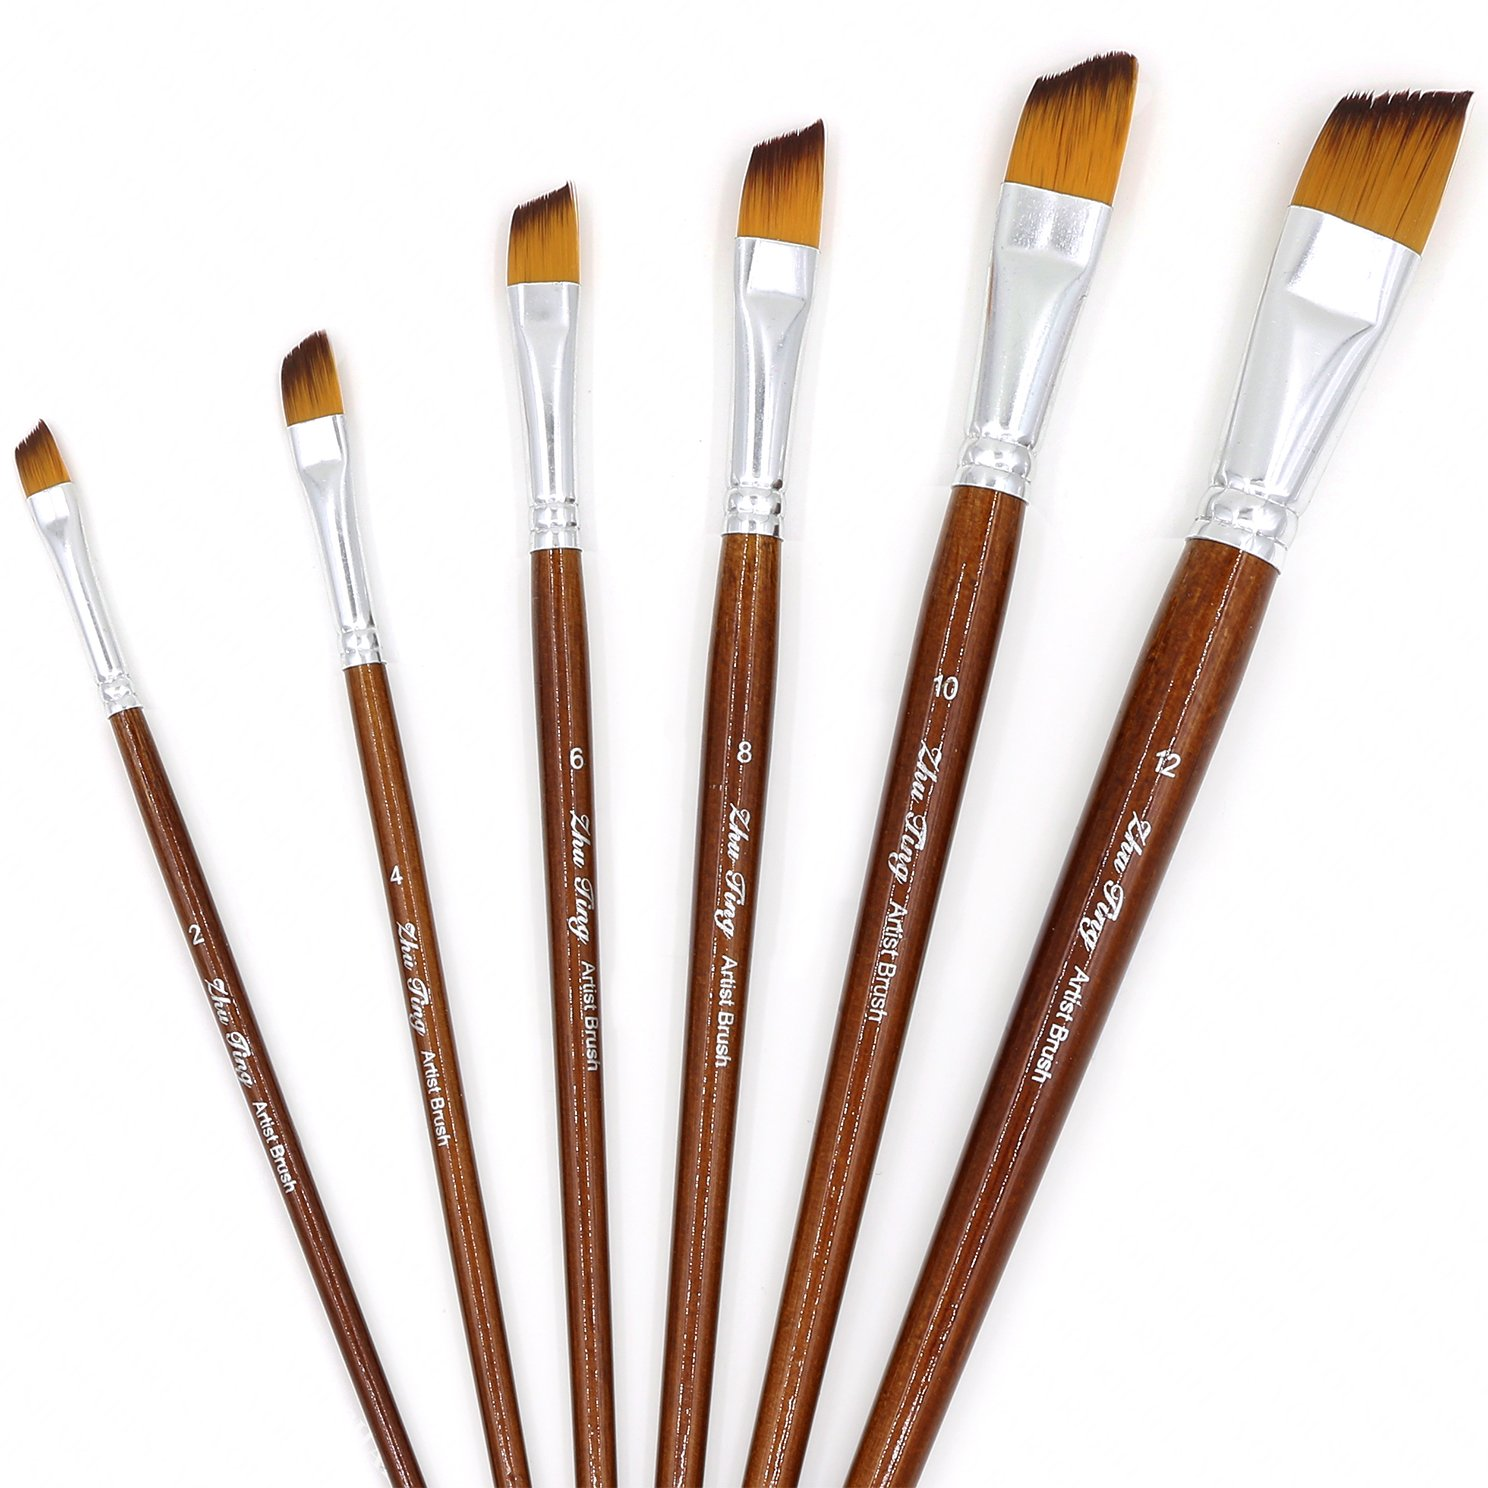 Amazon.com: YOUSHARES 6 pcs Art Paint Brush Set for Watercolor, Oil ...